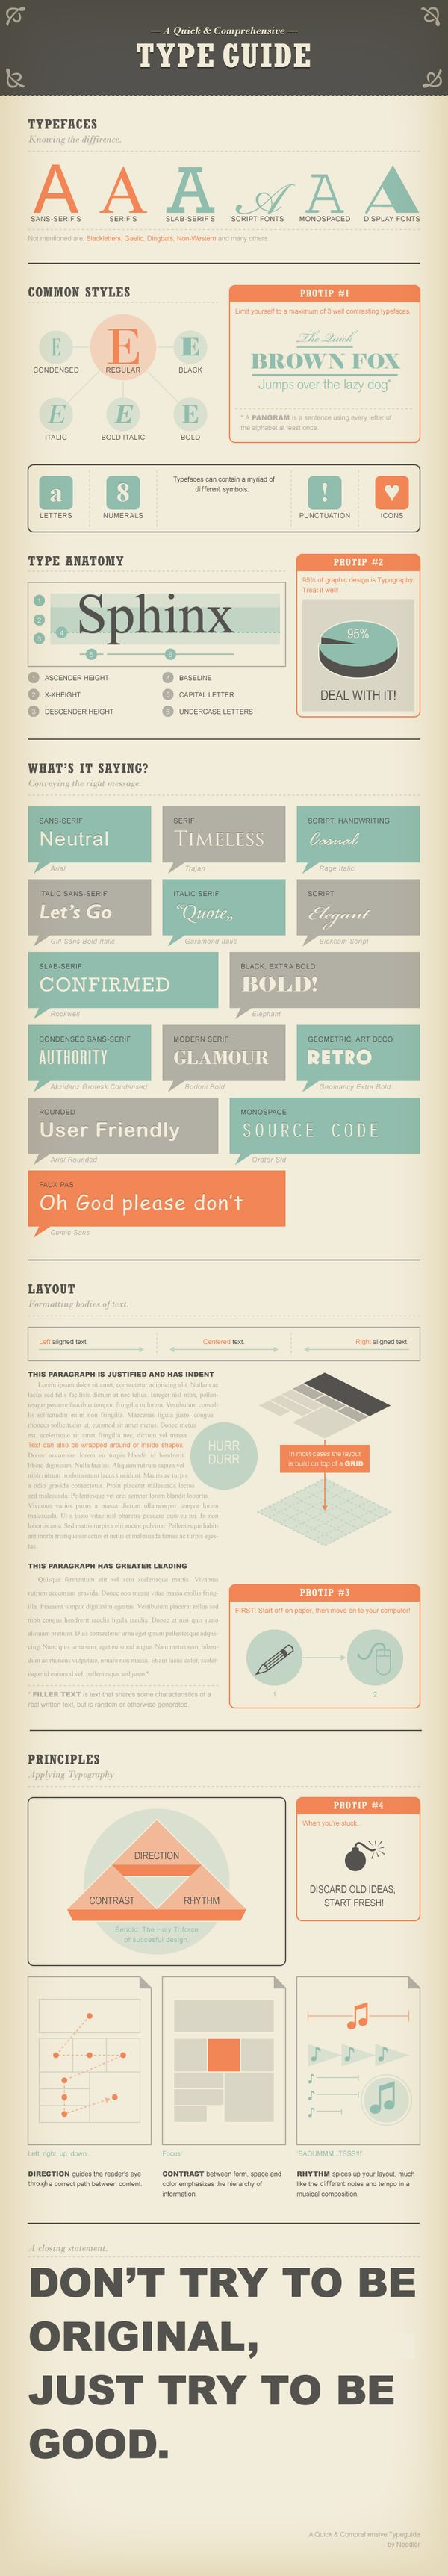 .: Guide To, Comic, Types Design, Graphics Design, Design Tips, Comprehen Types, Info Graphics, Infographics, Types Guide